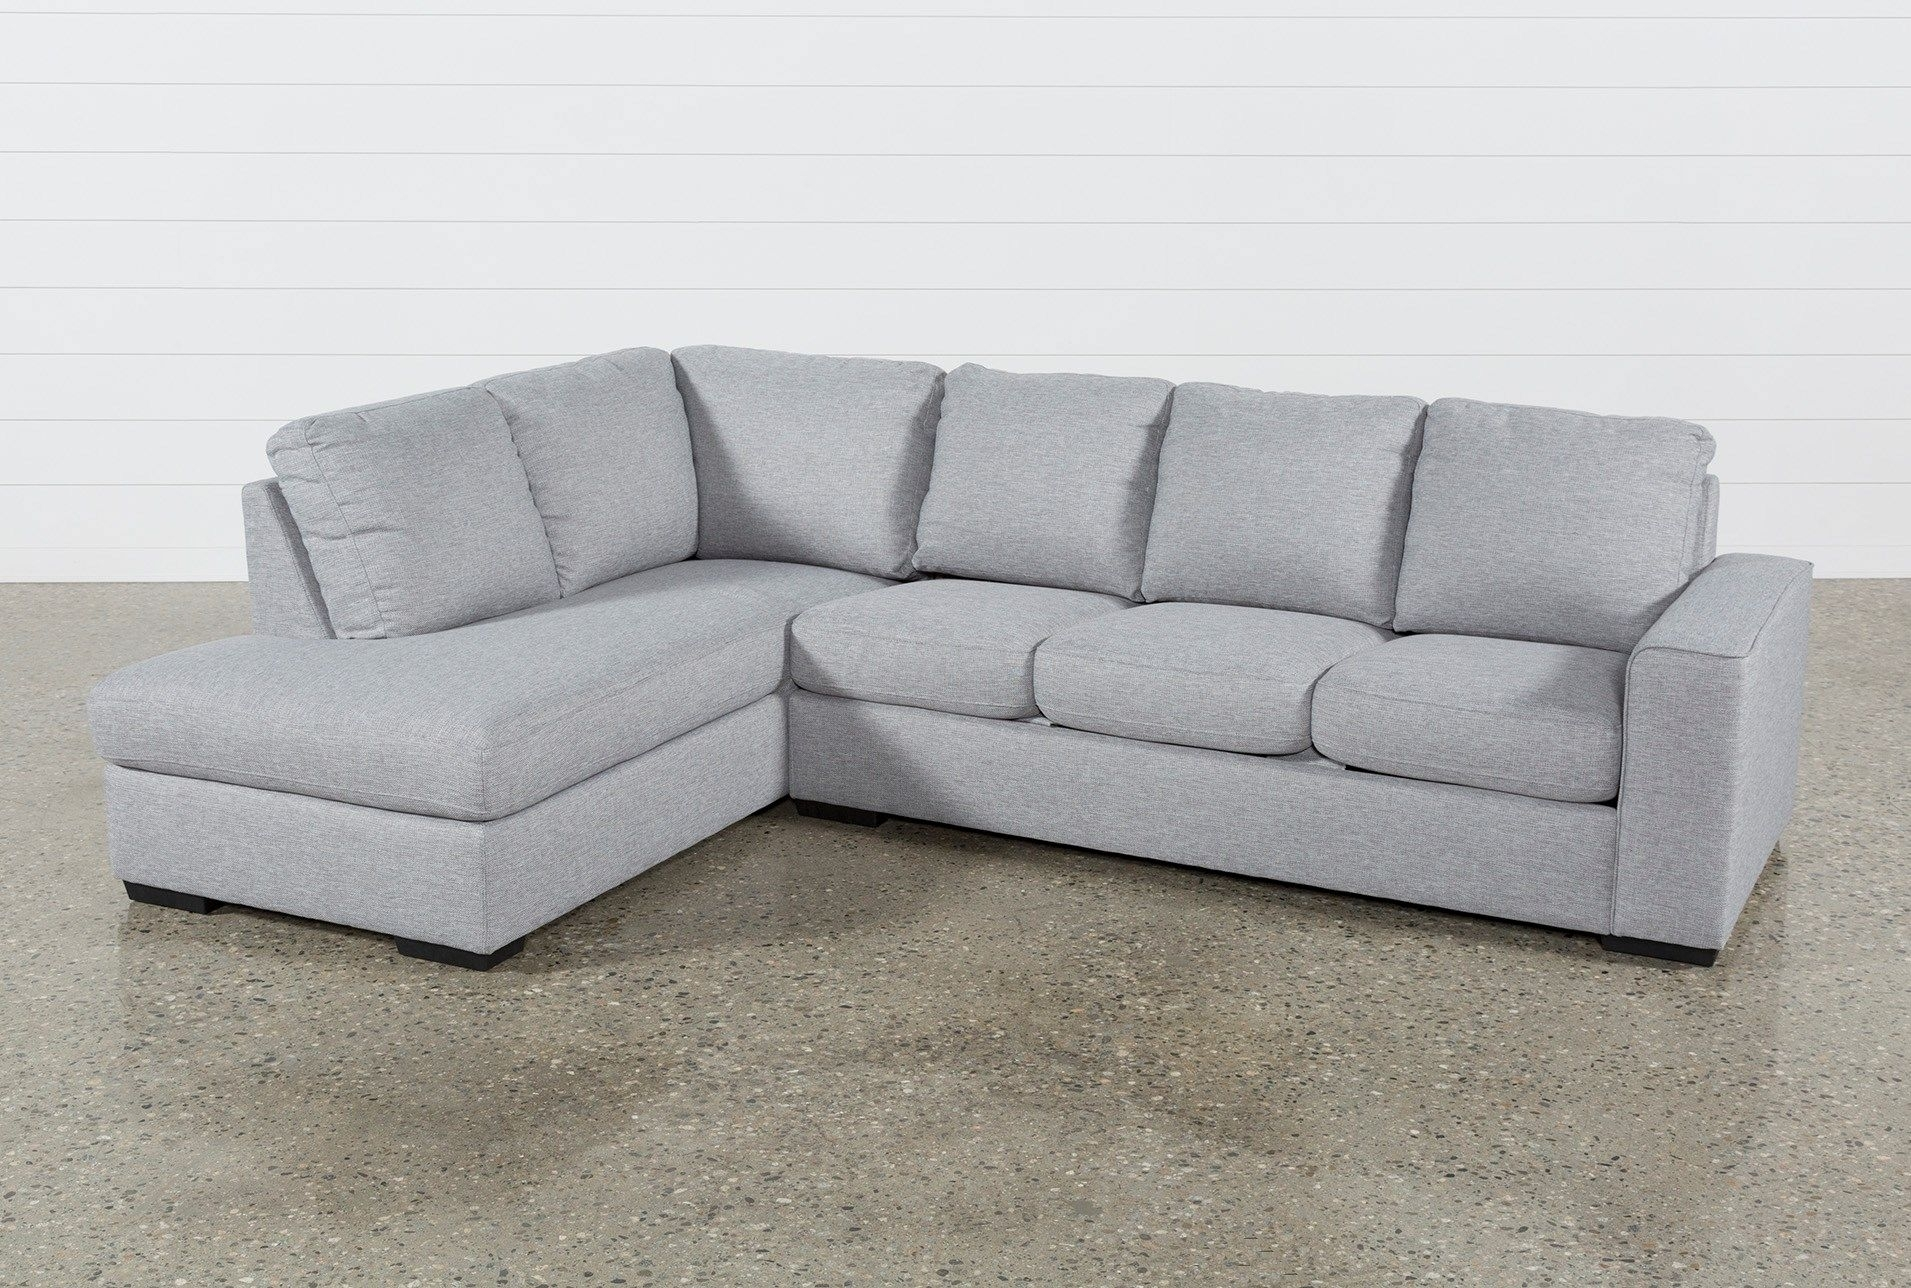 Lucy Grey 2 Piece Sectional W/laf Chaise | Tx House | Pinterest With Lucy Dark Grey 2 Piece Sectionals With Laf Chaise (Image 18 of 25)